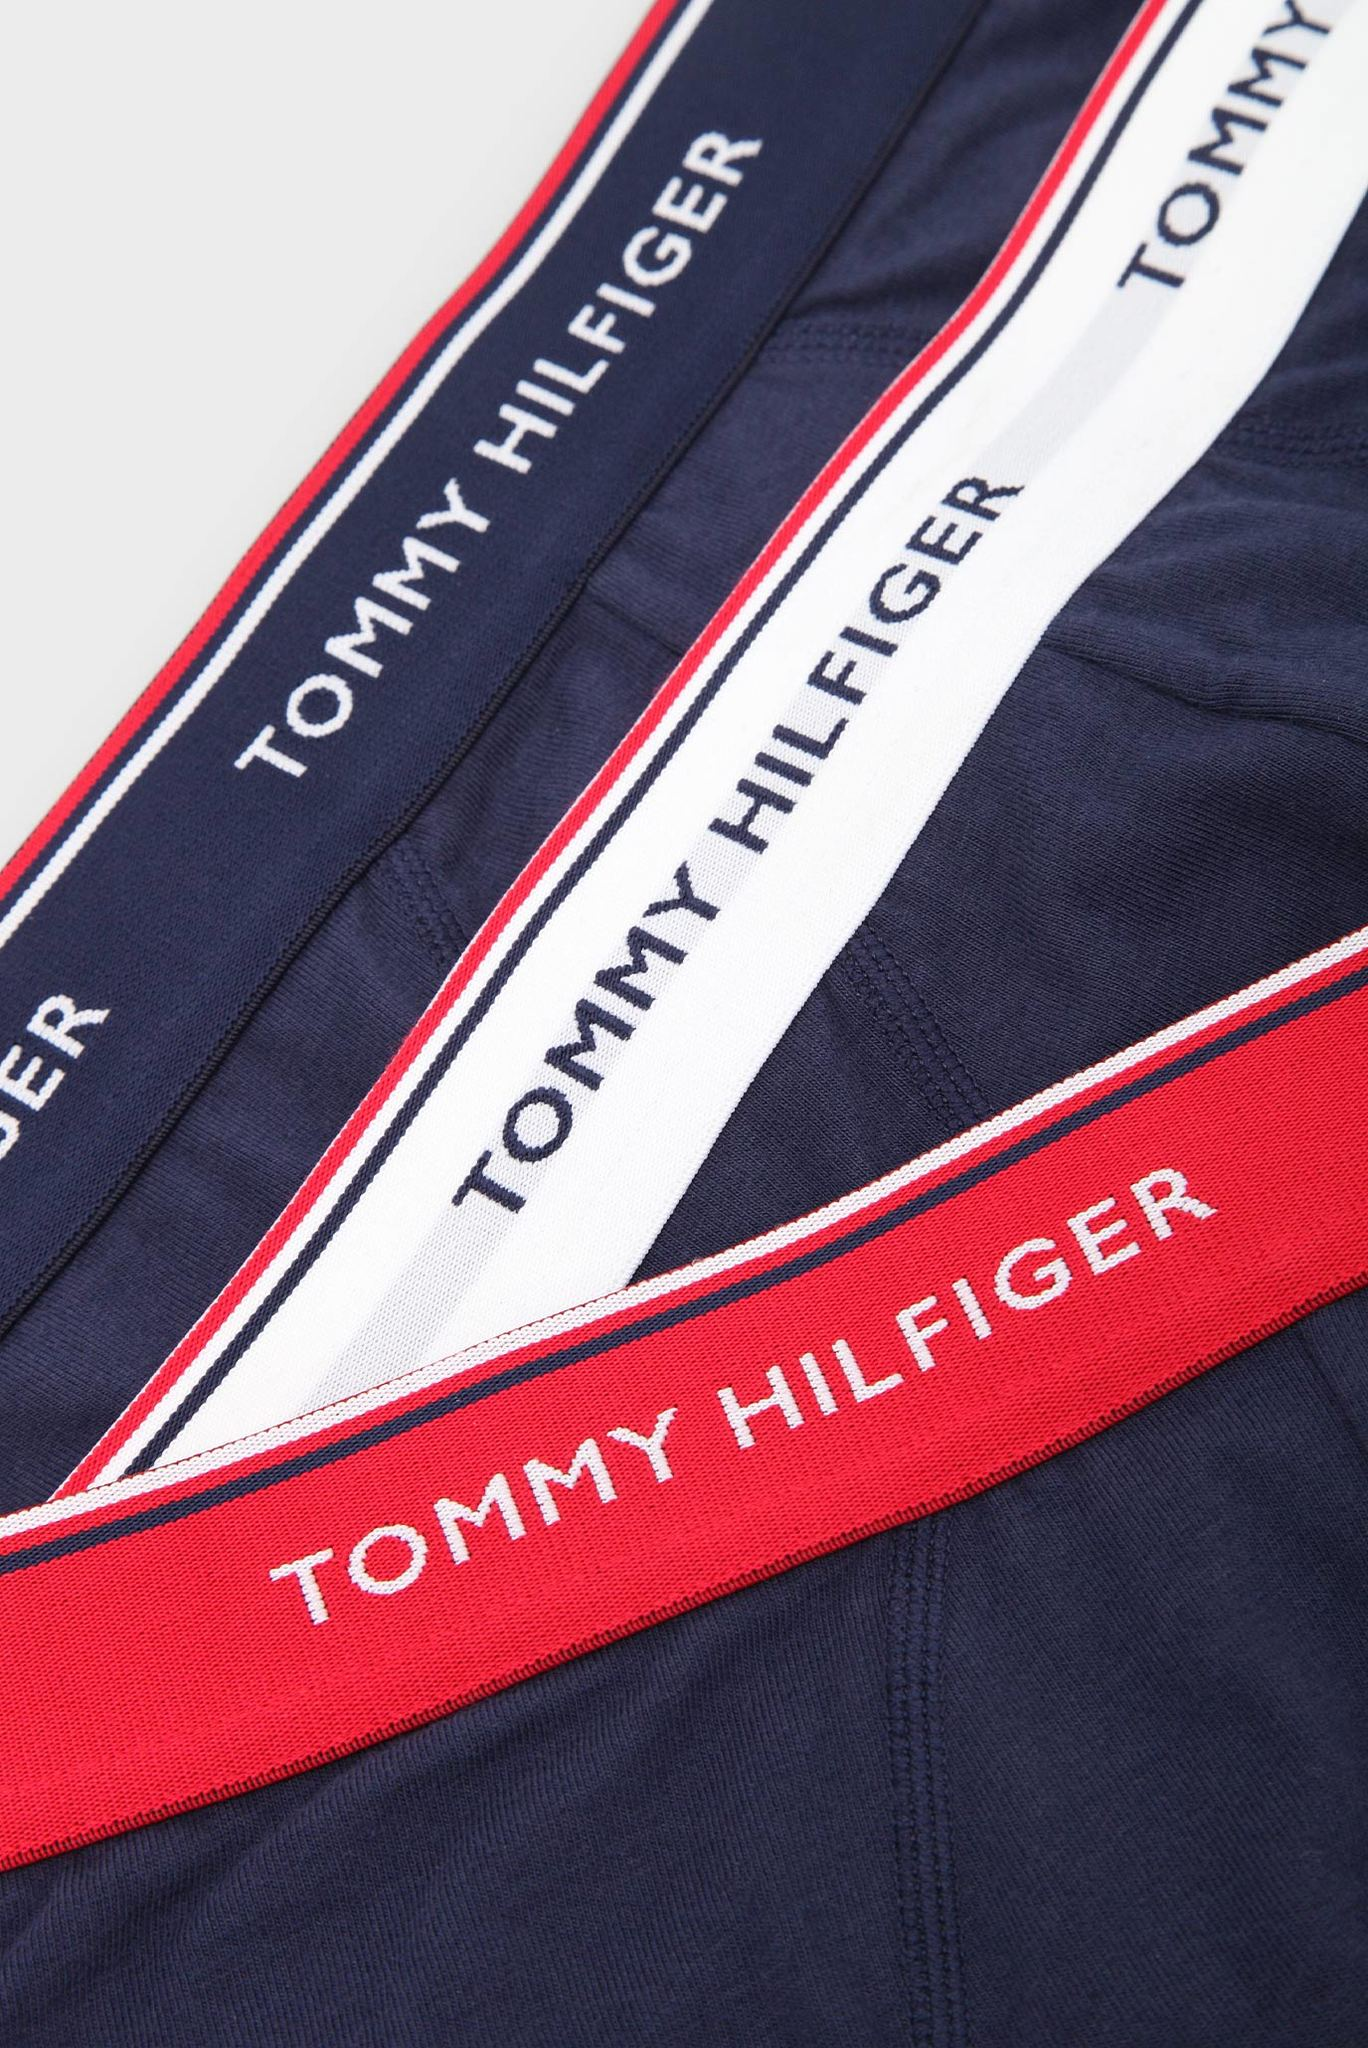 Мужские синие брифы (3 шт) (disabled for color code resolve) Tommy Hilfiger